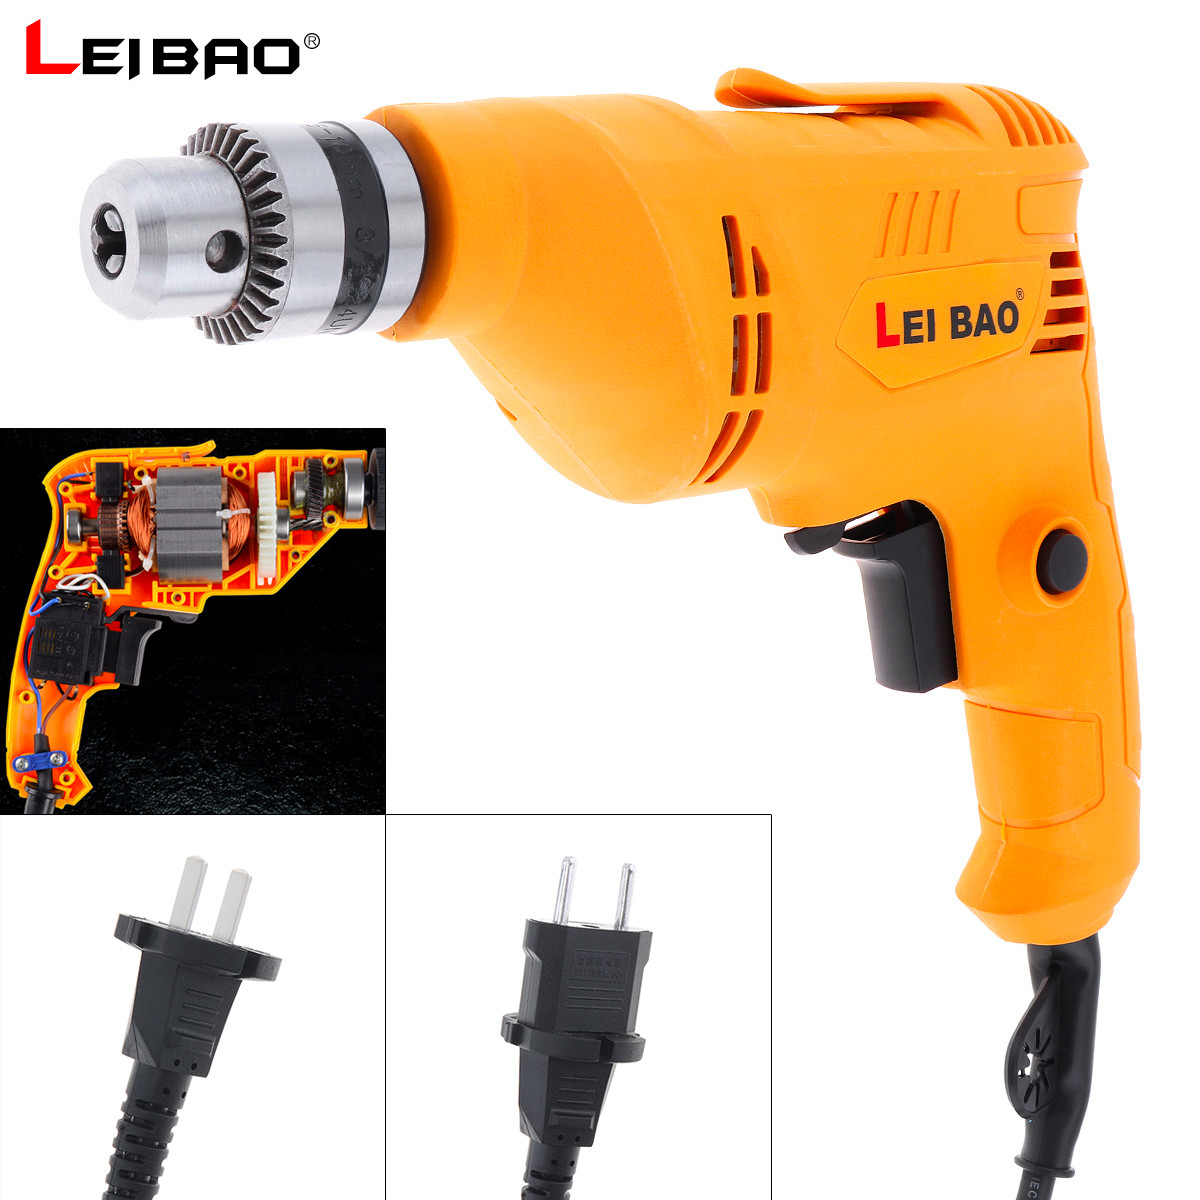 220V 580W Handheld Impact Electric Pistol Drill with Rotation Adjustment Switch and 10mm Drill Chuck for Punching Polishing image